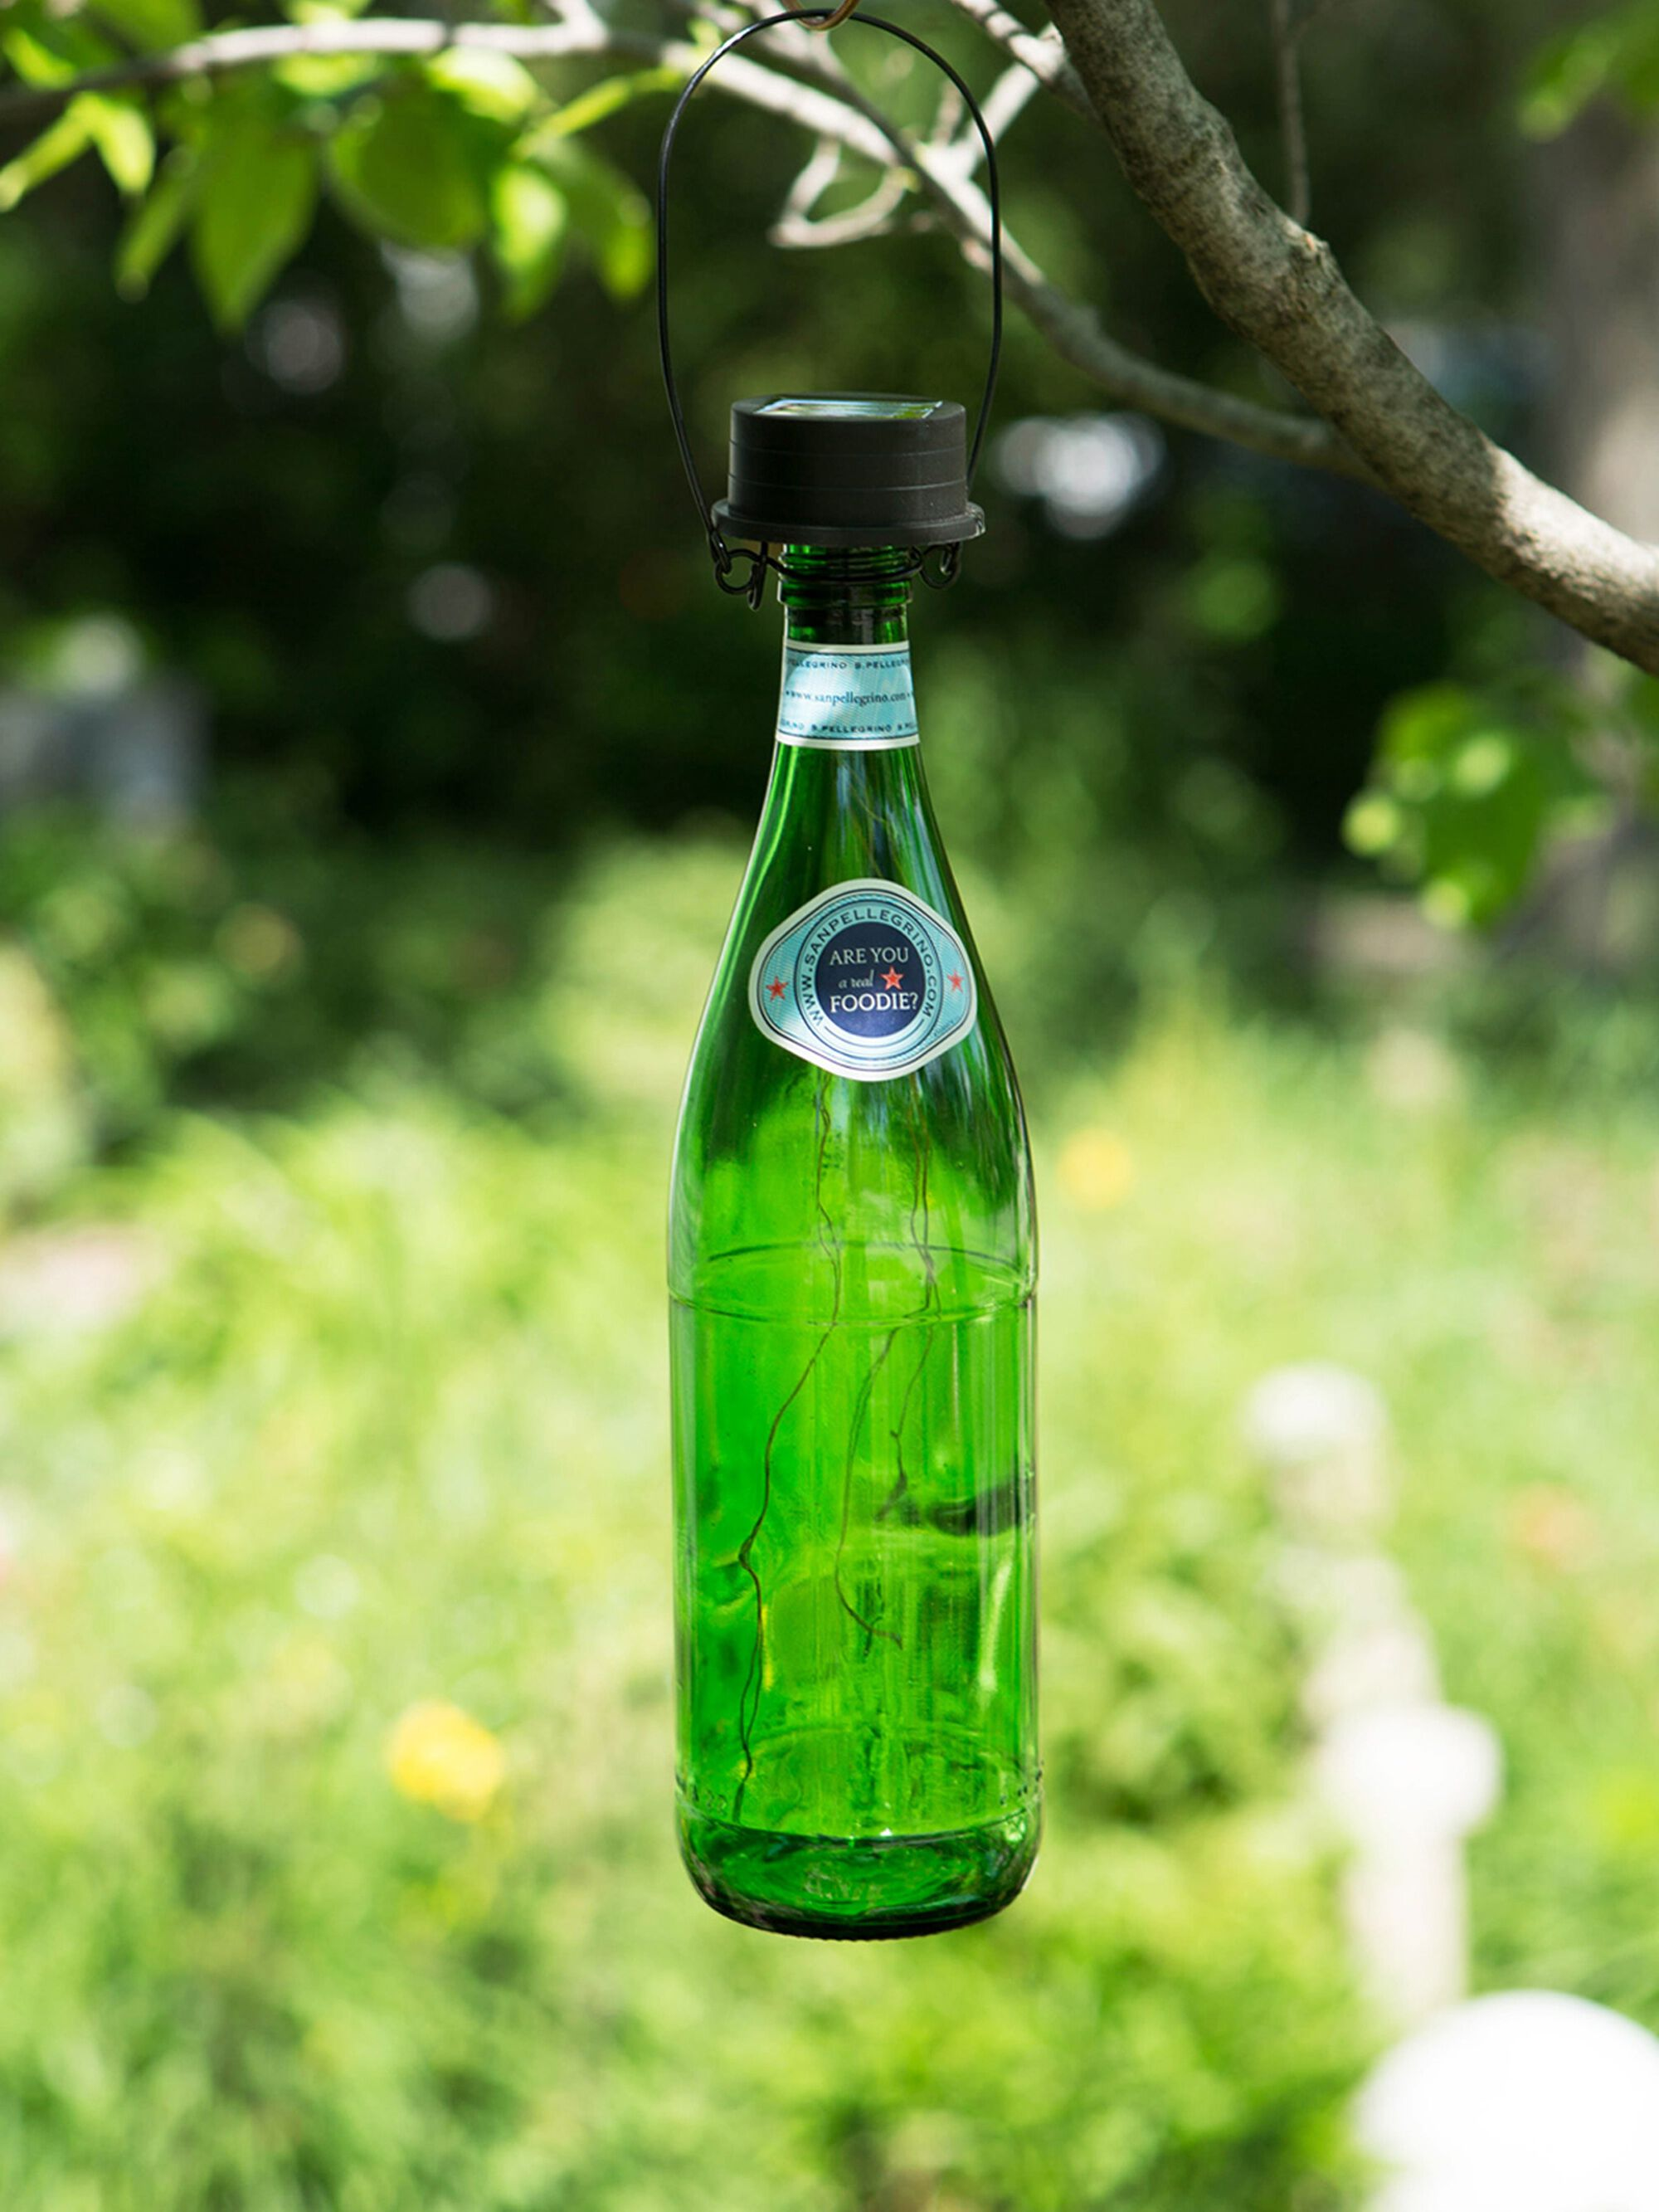 Chandelier Lamp Solar Lantern - Solar Bottle Lantern Kit - Wine Bottle Lights